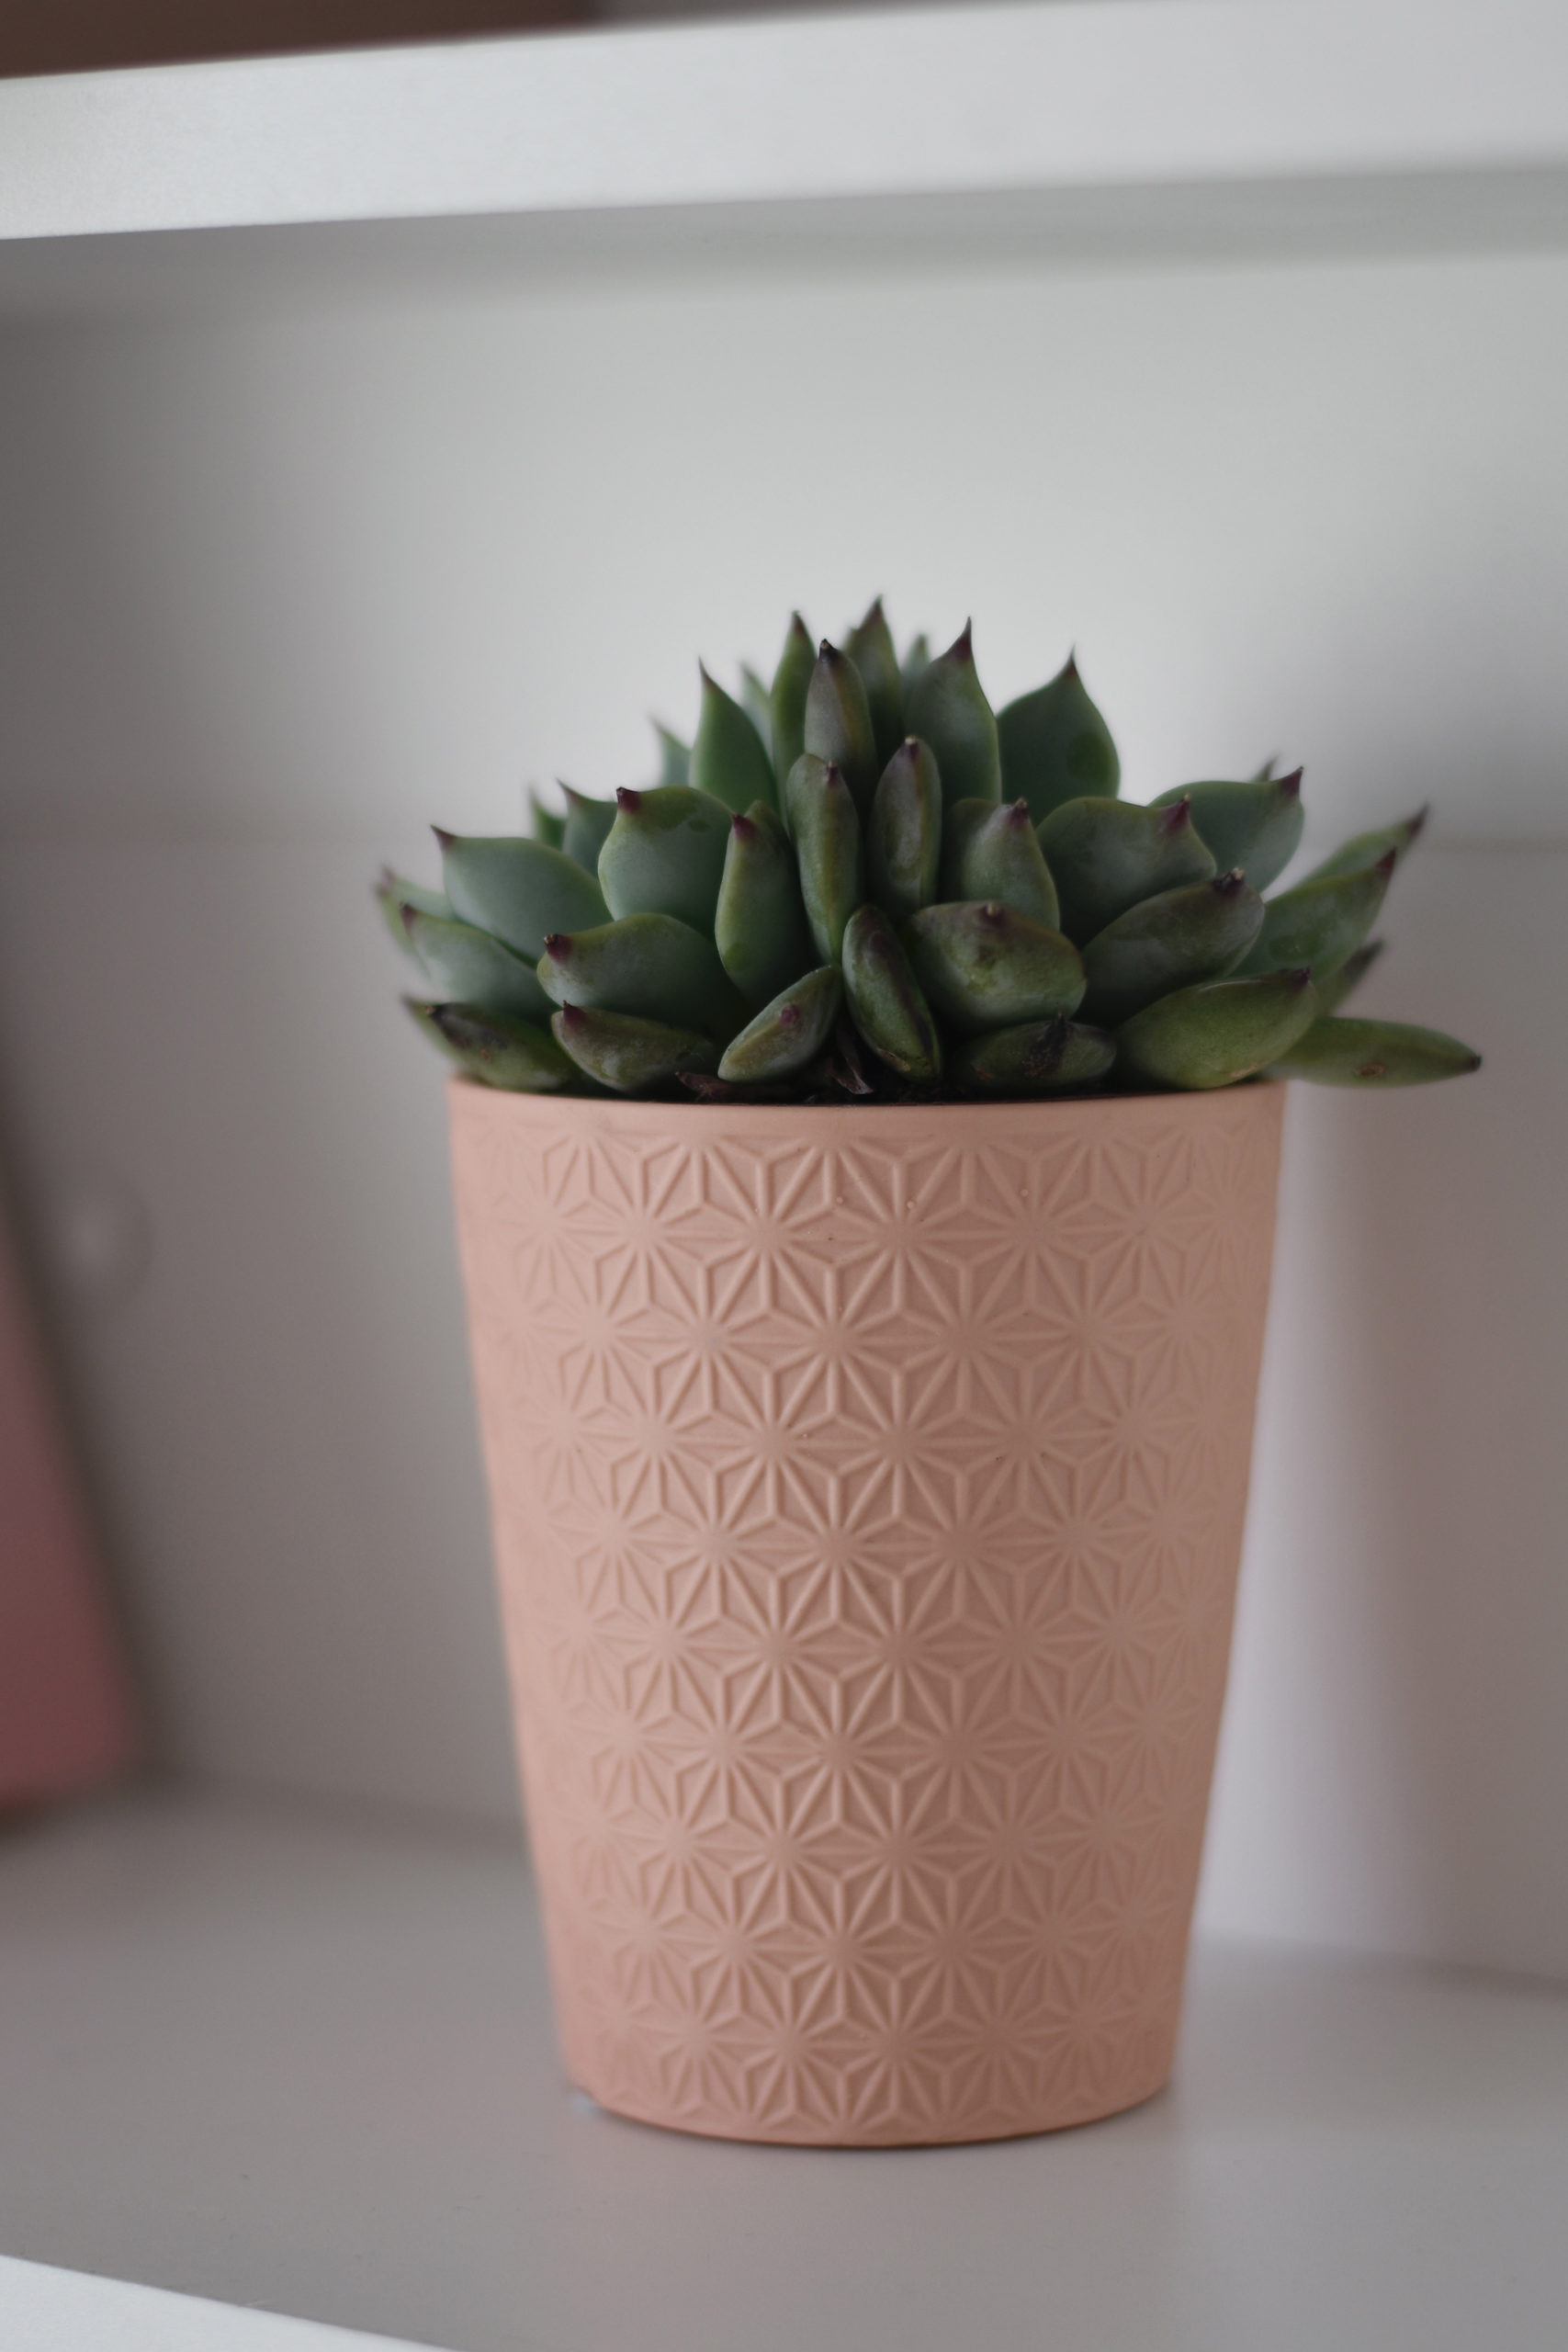 Succulents add a bit of greenery and are easy to take care of!